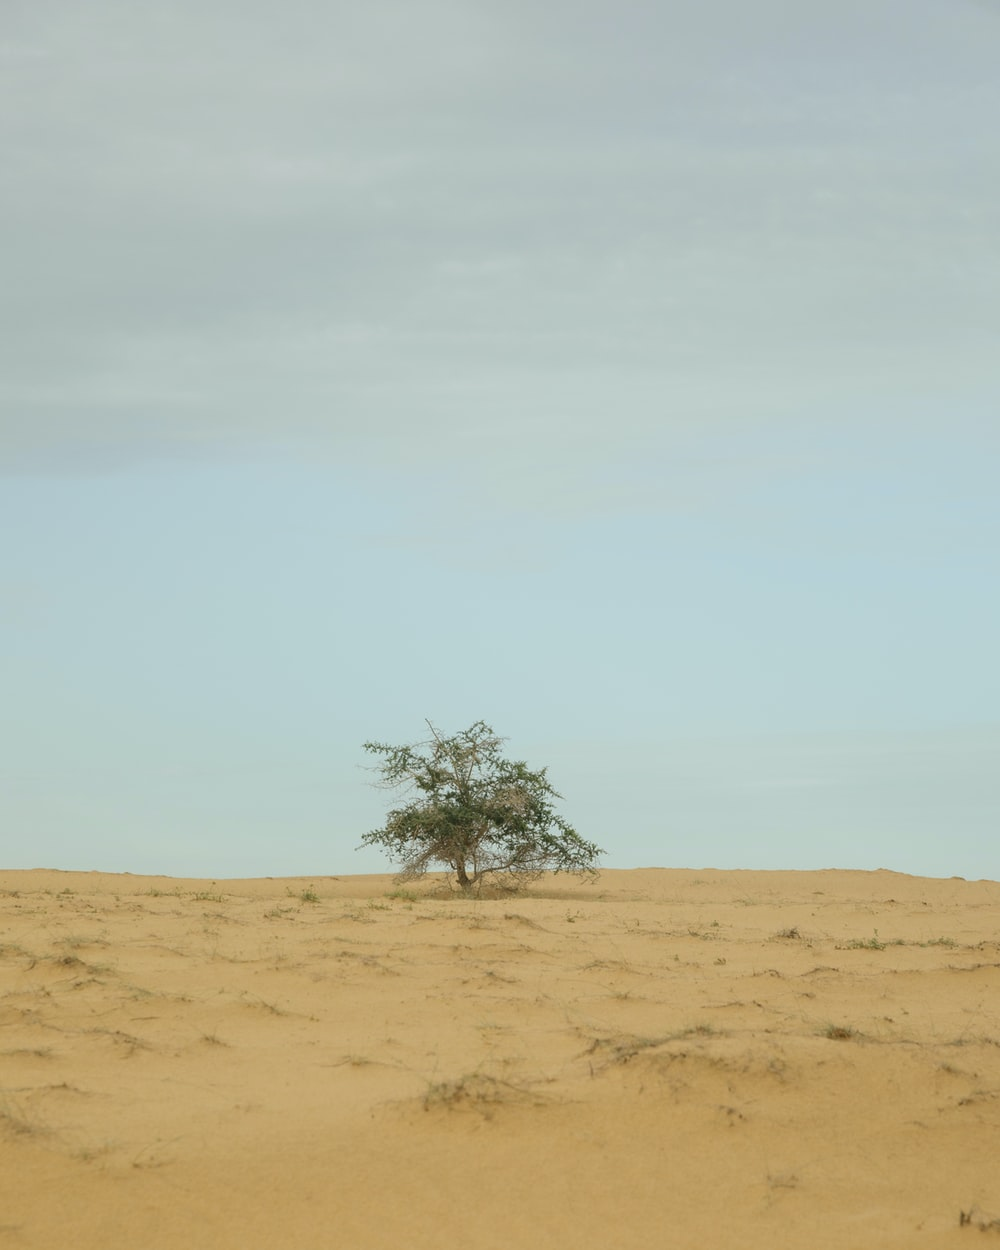 green tree on brown sand under white sky during daytime